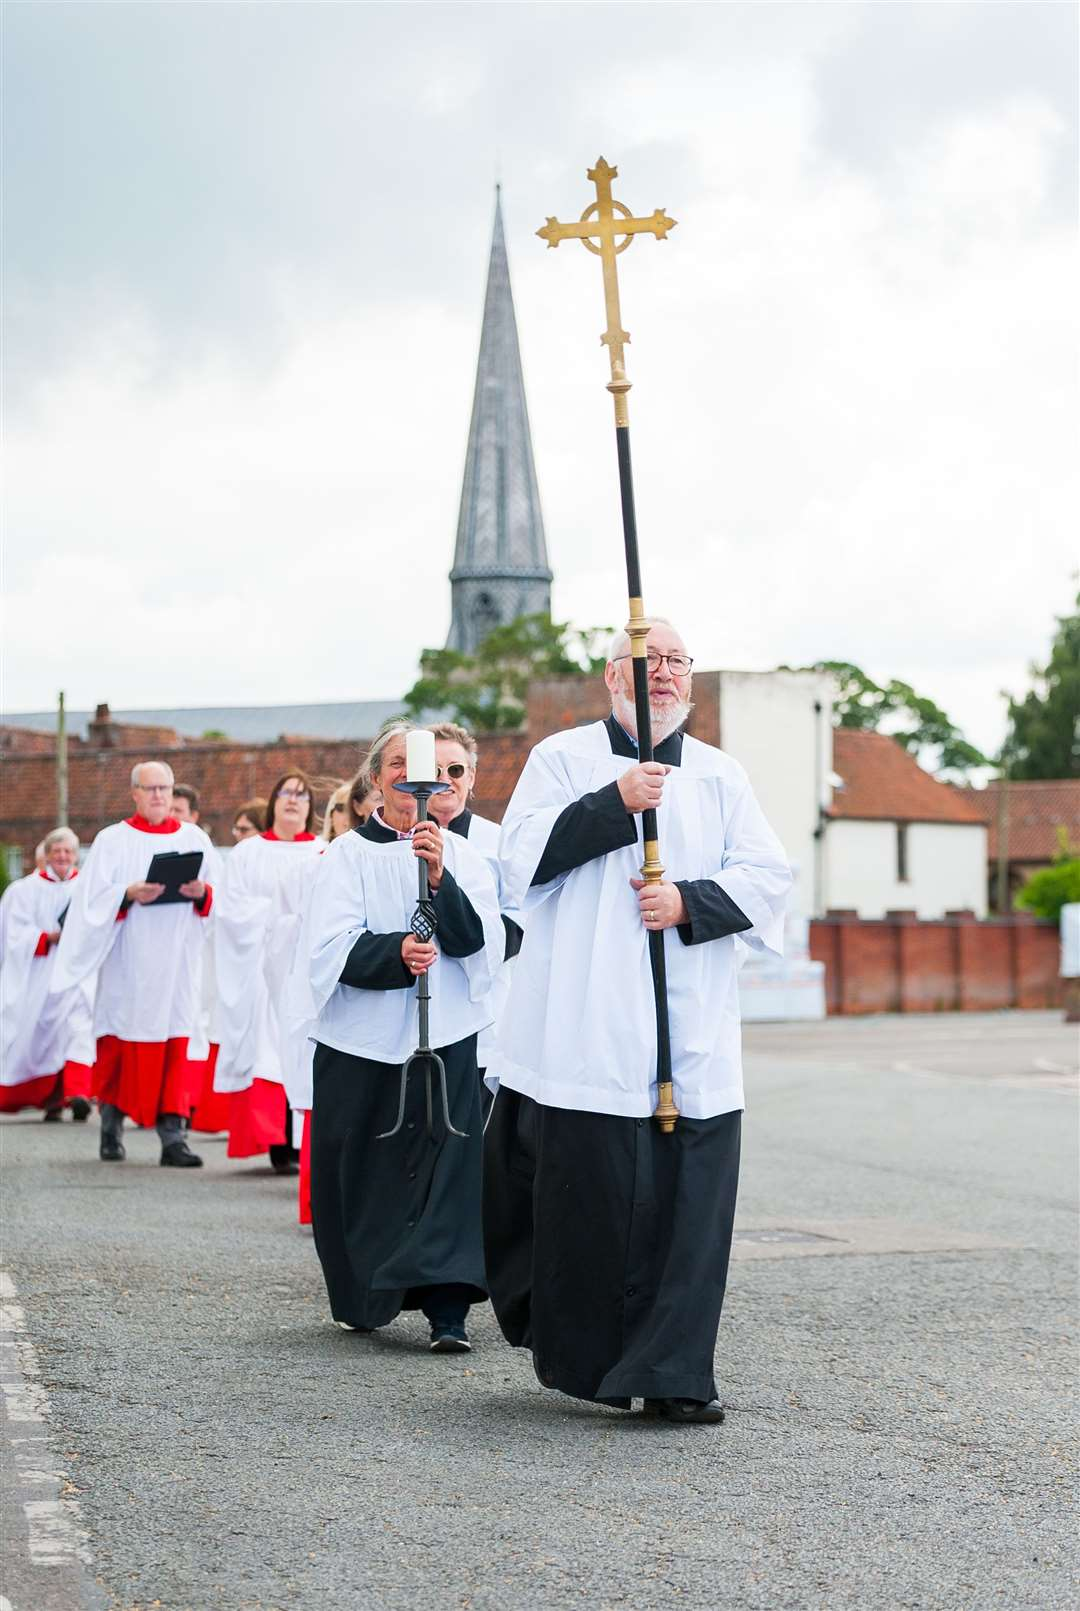 The Sea Sunday procession made its way from St Nicholas Chapel to the Fisher Fleet.. (49110046)